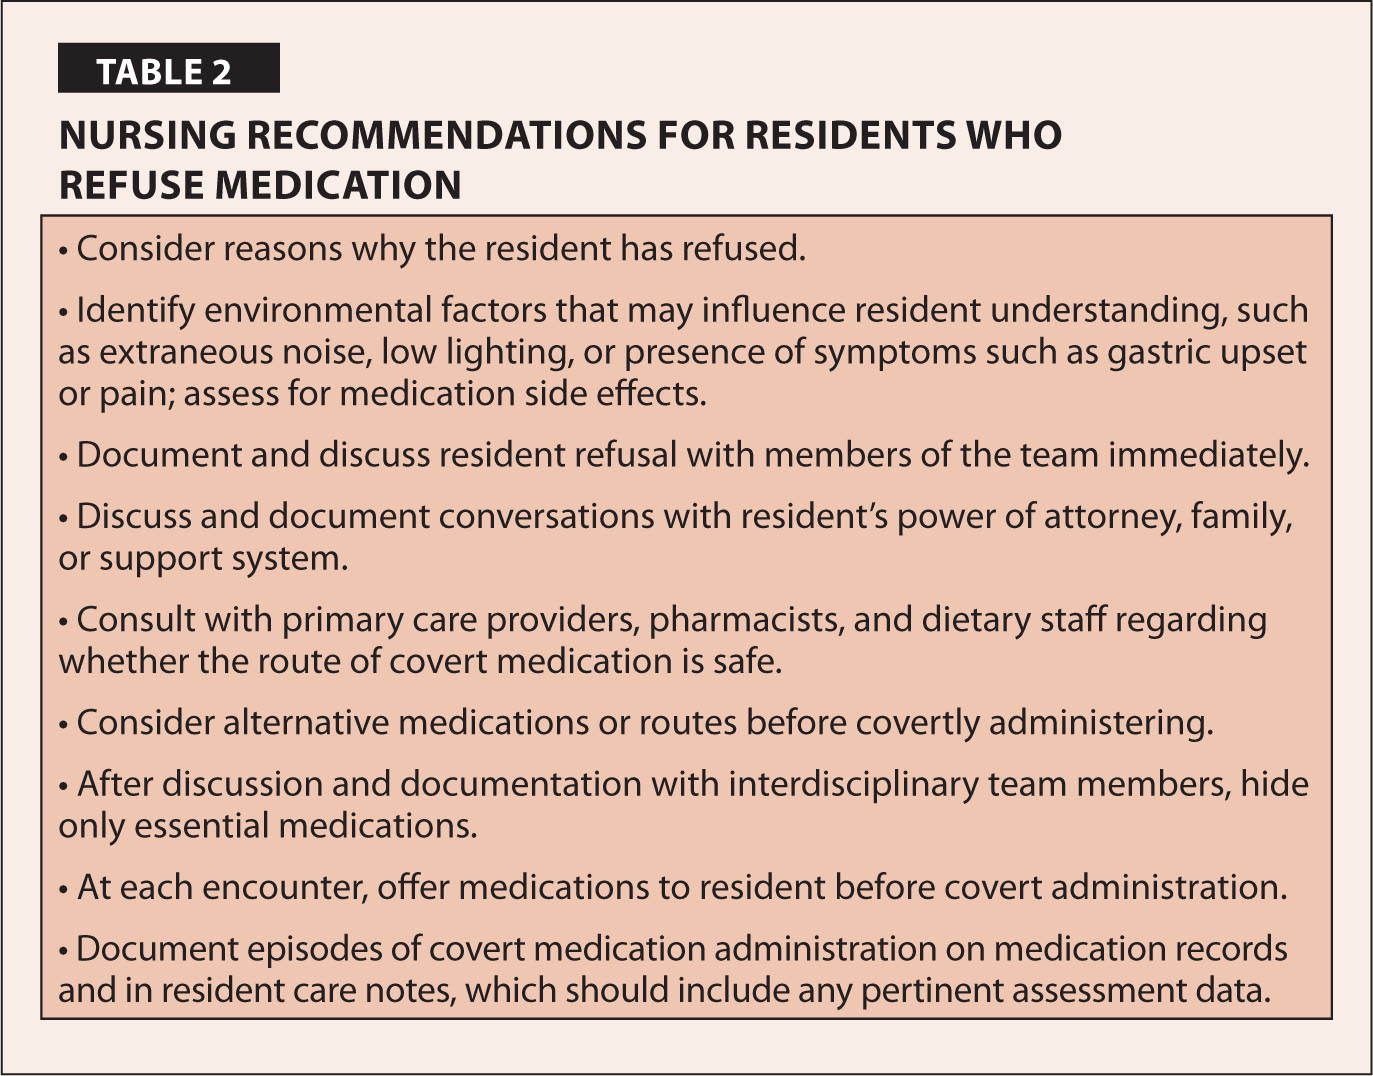 Nursing Recommendations for Residents Who Refuse Medication